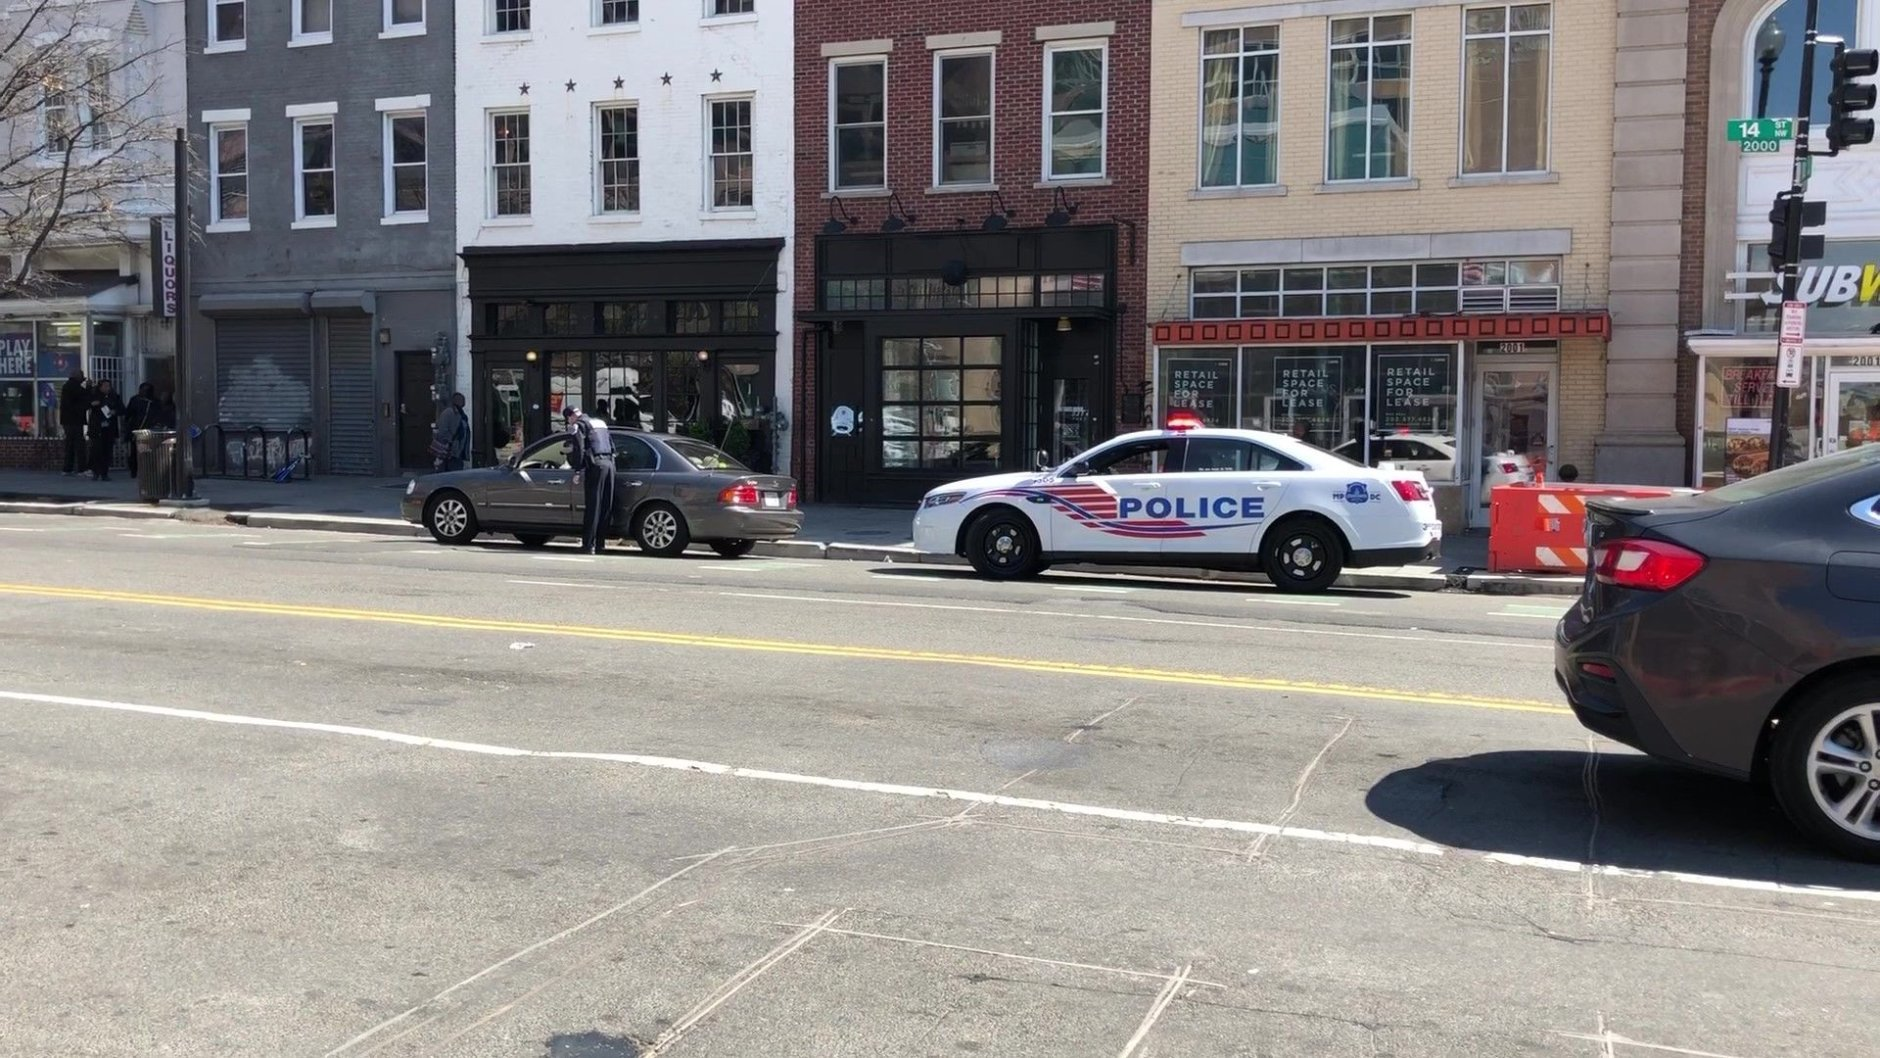 During the enforcement effort Wednesday, vehicles were pulled over near the intersection of 14th and U streets in Northwest D.C. (WTOP/Kristi King)